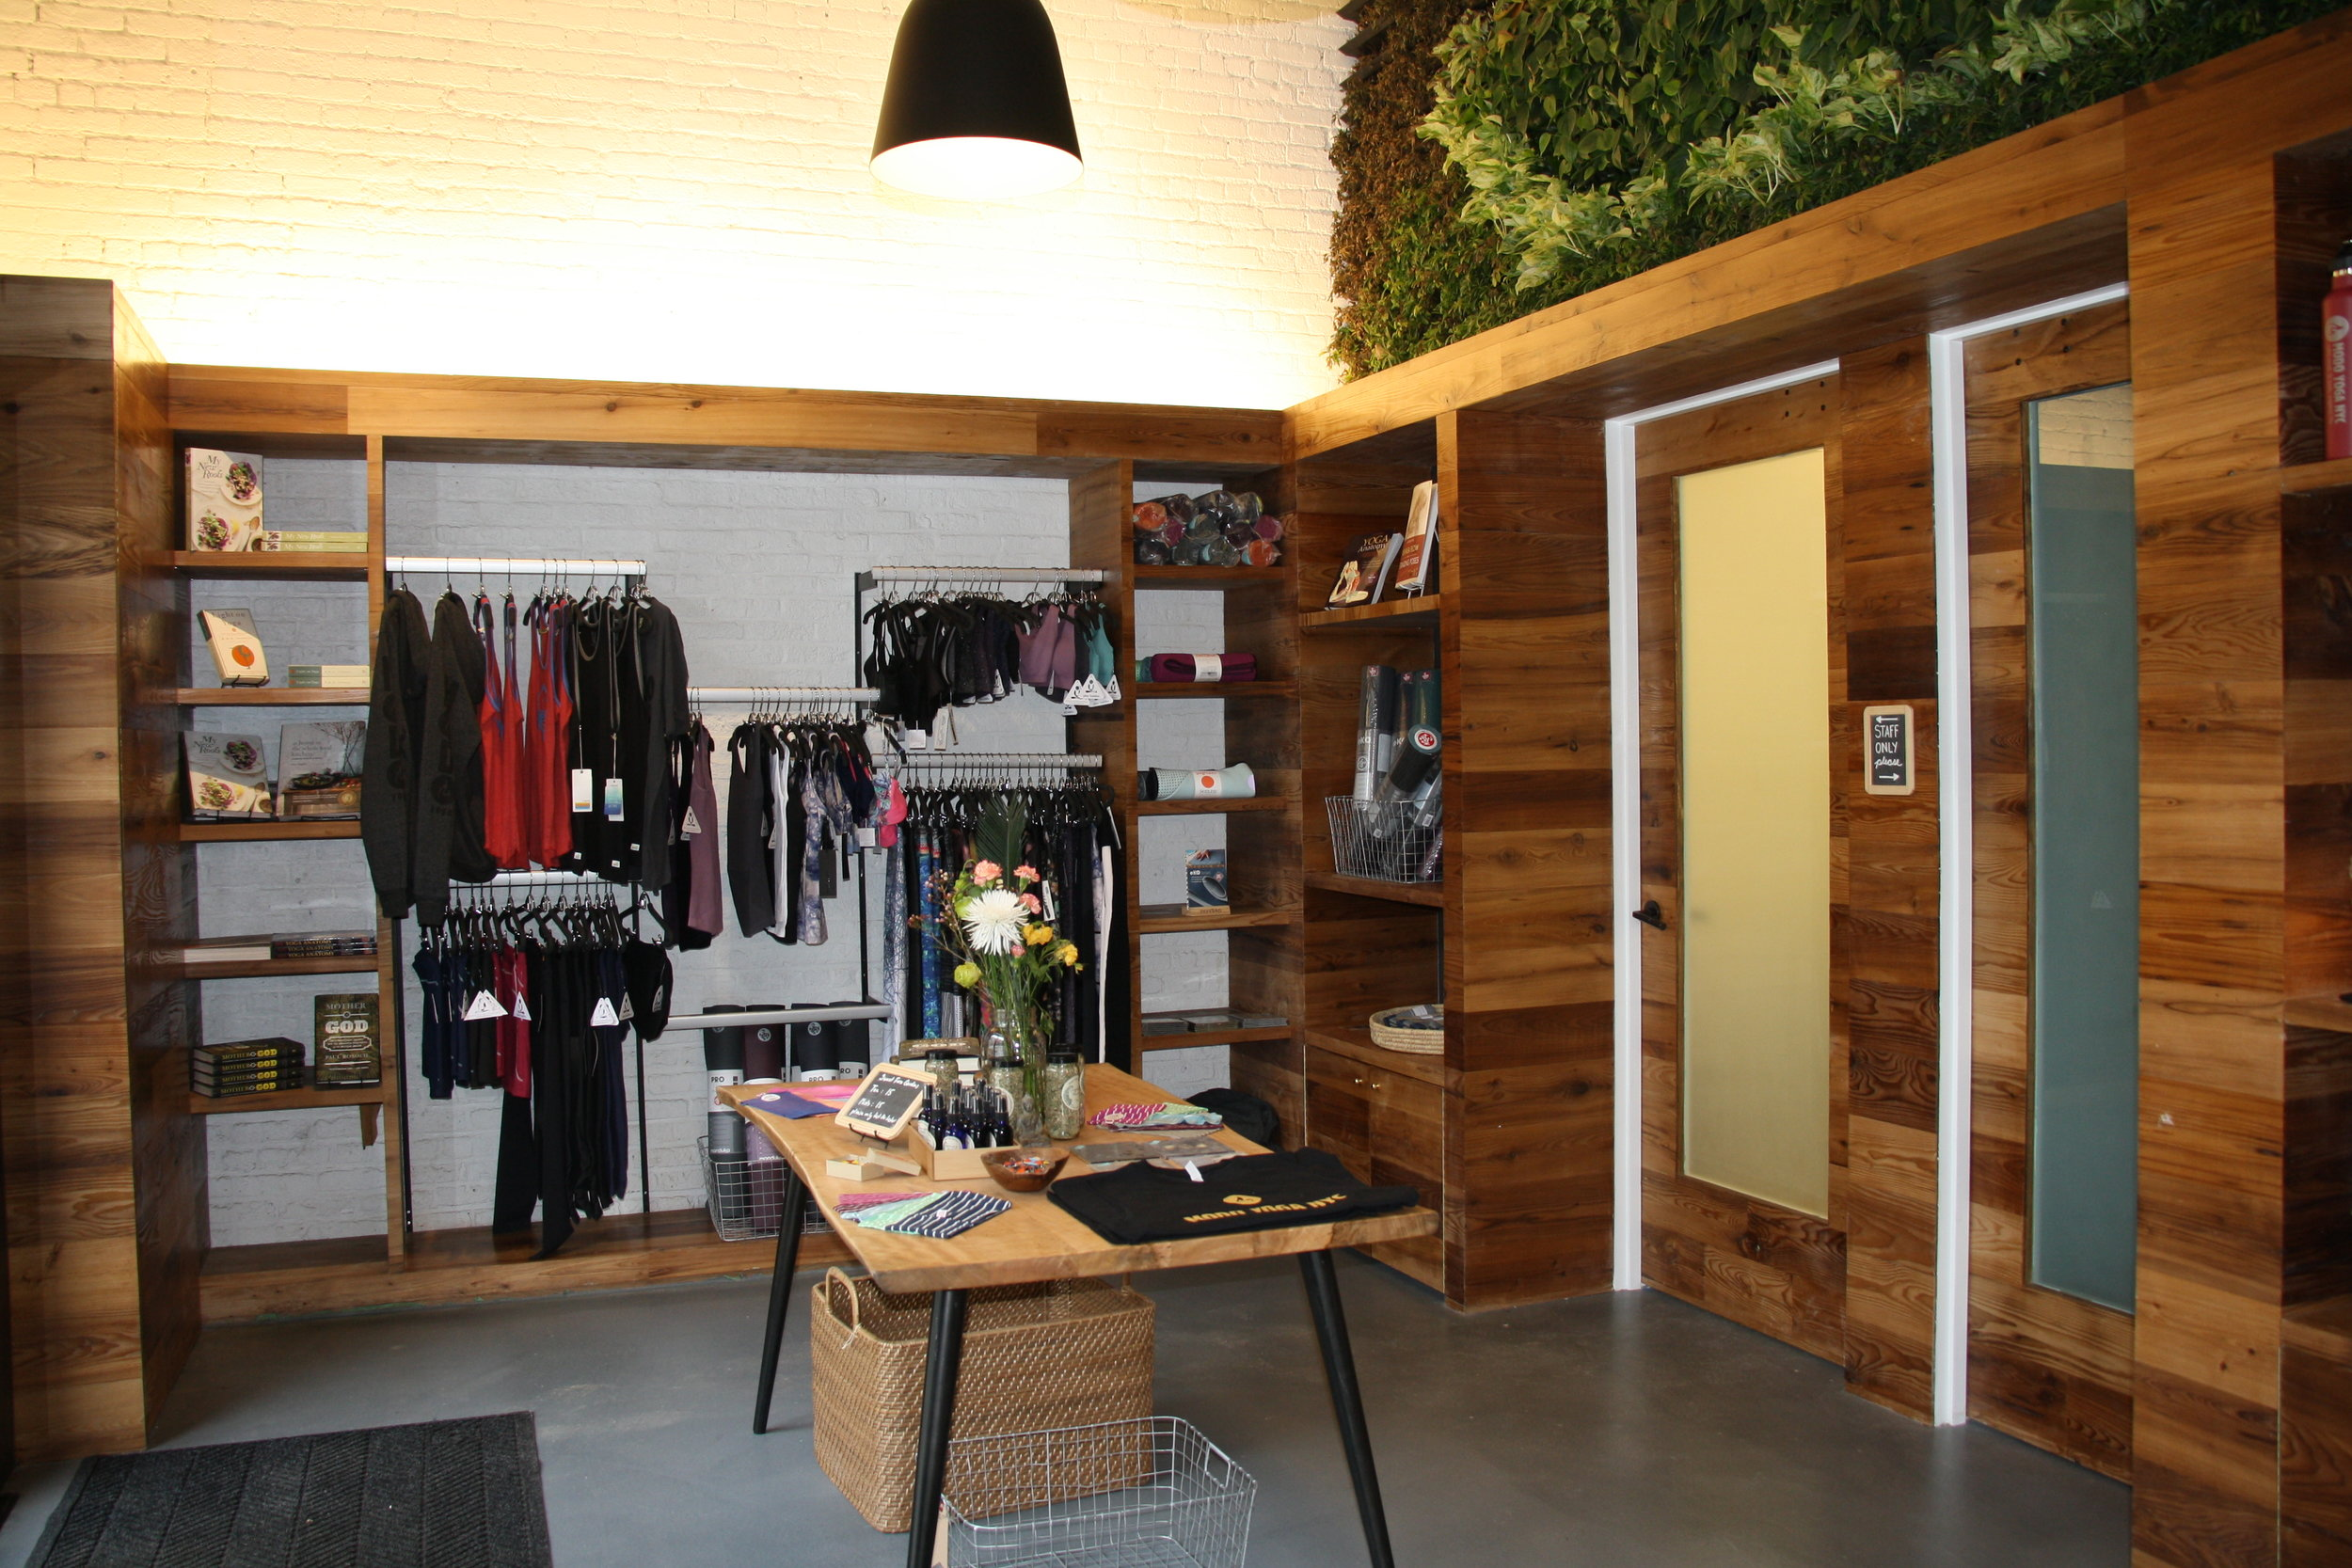 Retail space with athletic products on racks and display shelves for guests at Modo Yoga in Brooklyn, New York. MEP designed by 2L Engineering.